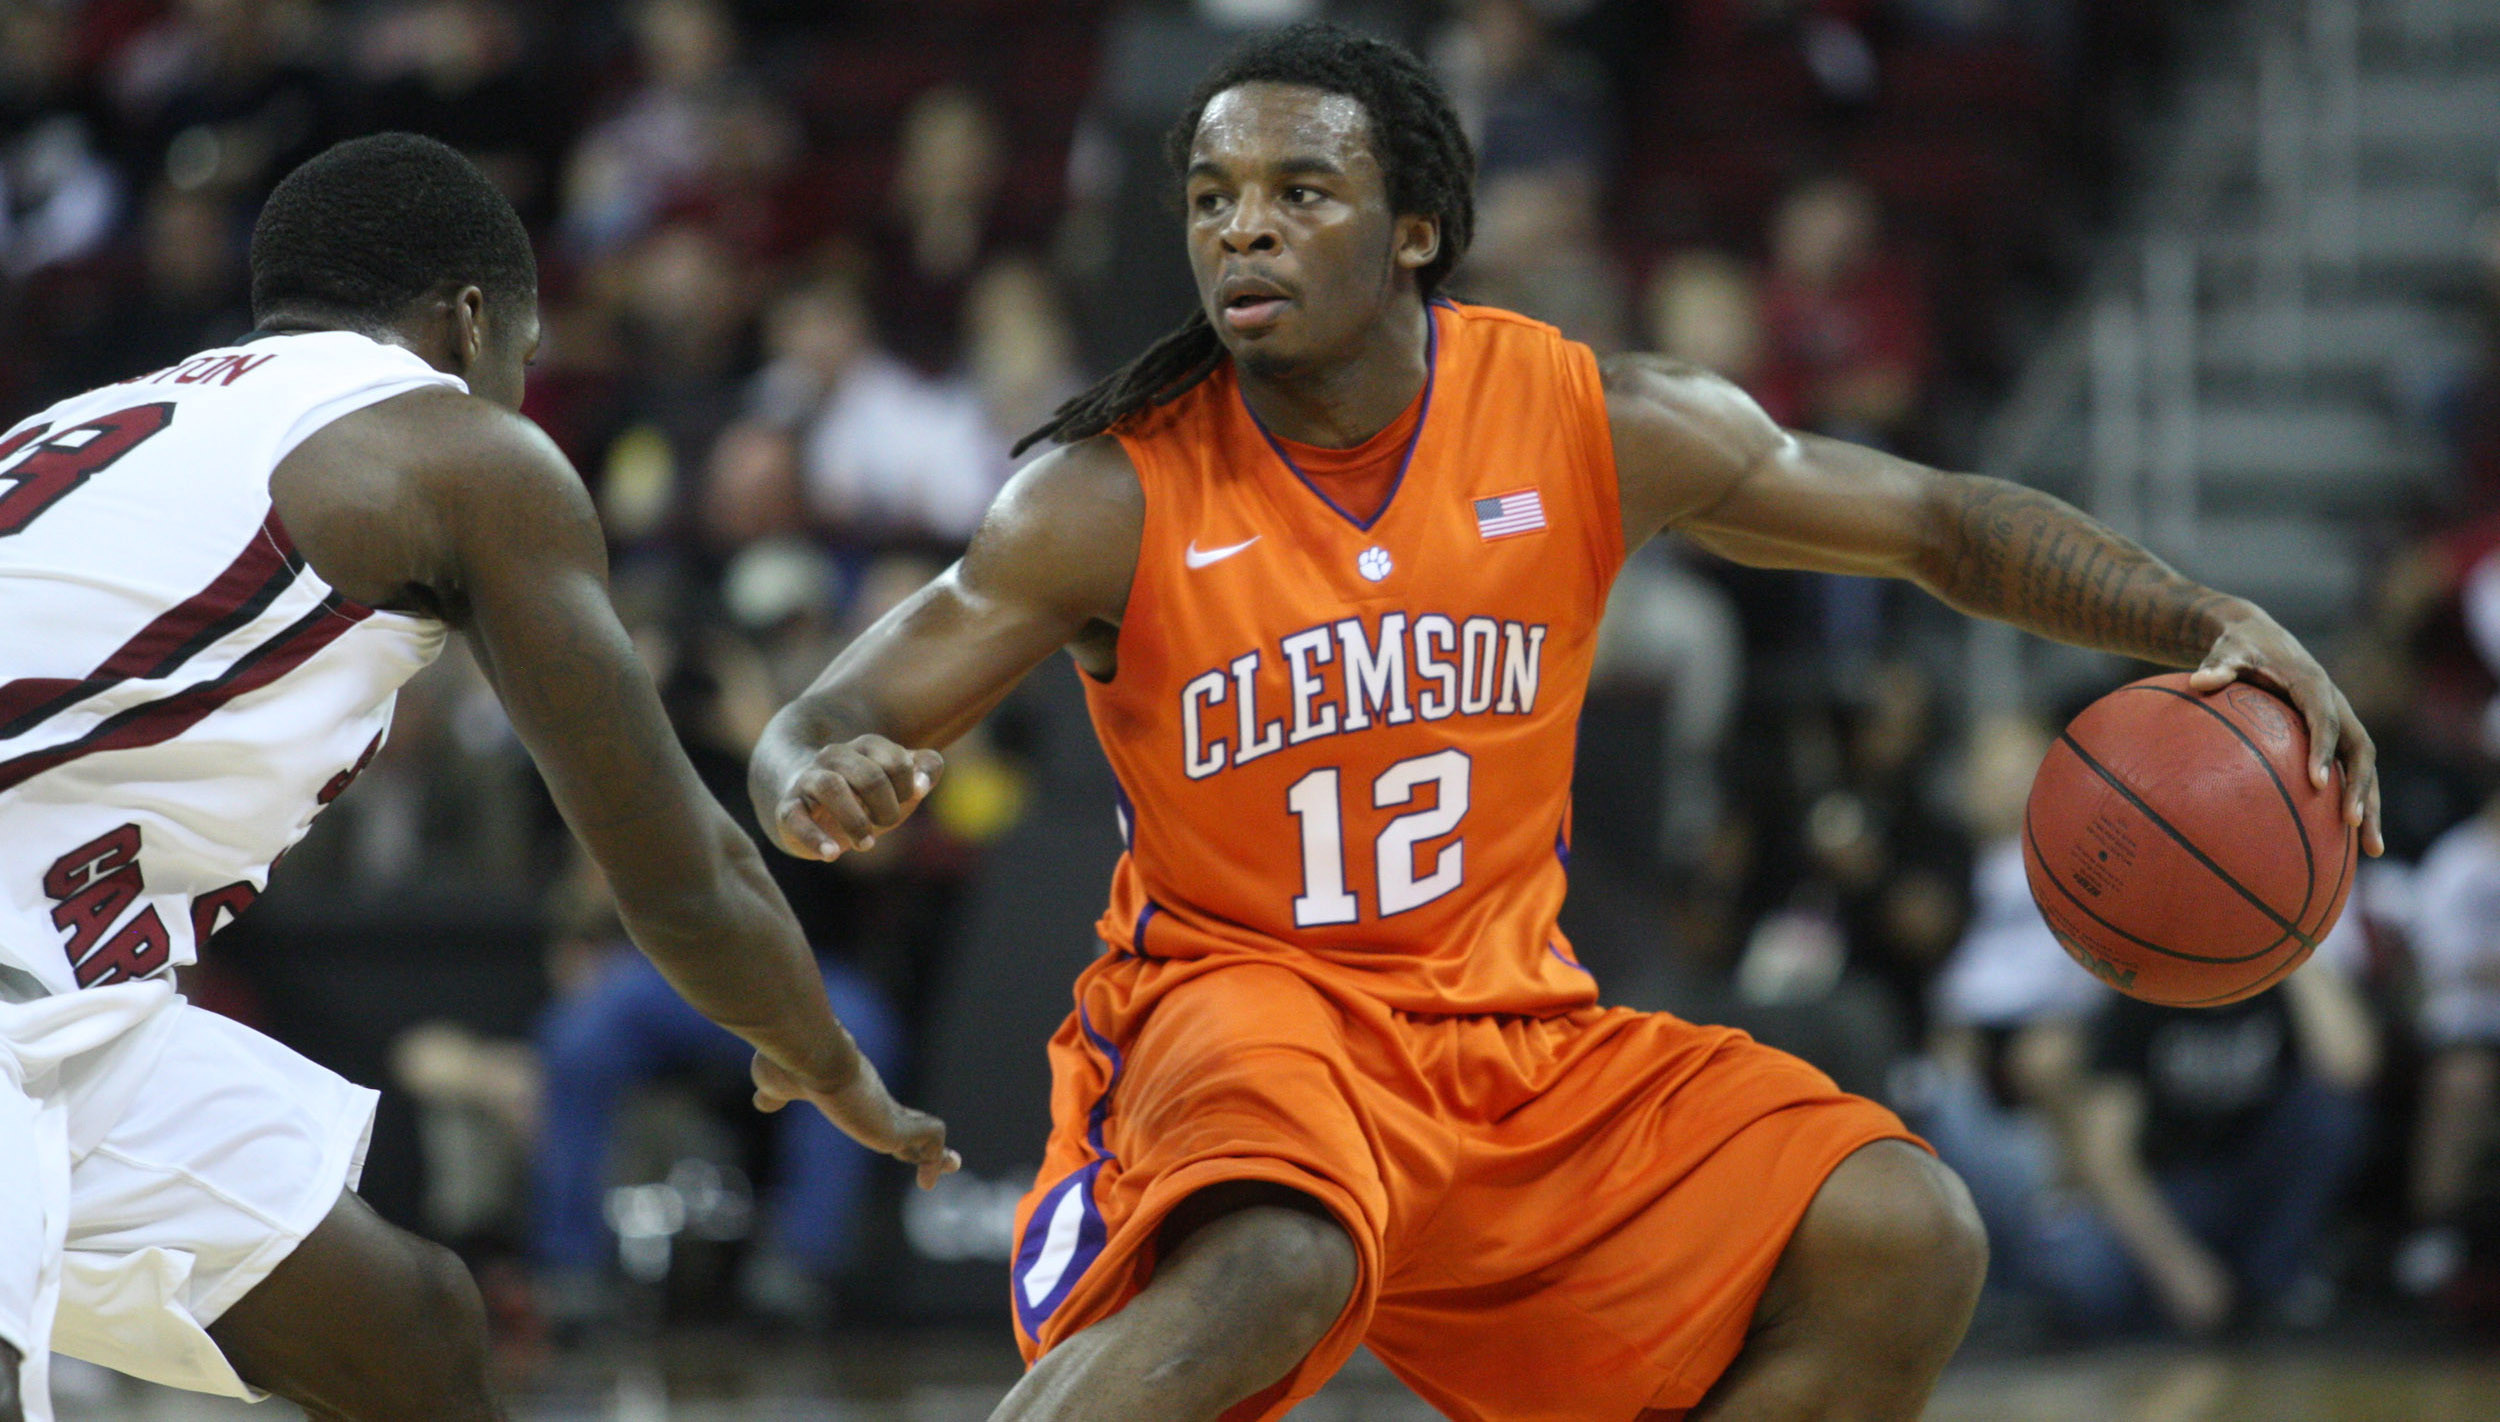 Clemson to Celebrate Military Appreciation Day Saturday at Men's Basketball Game